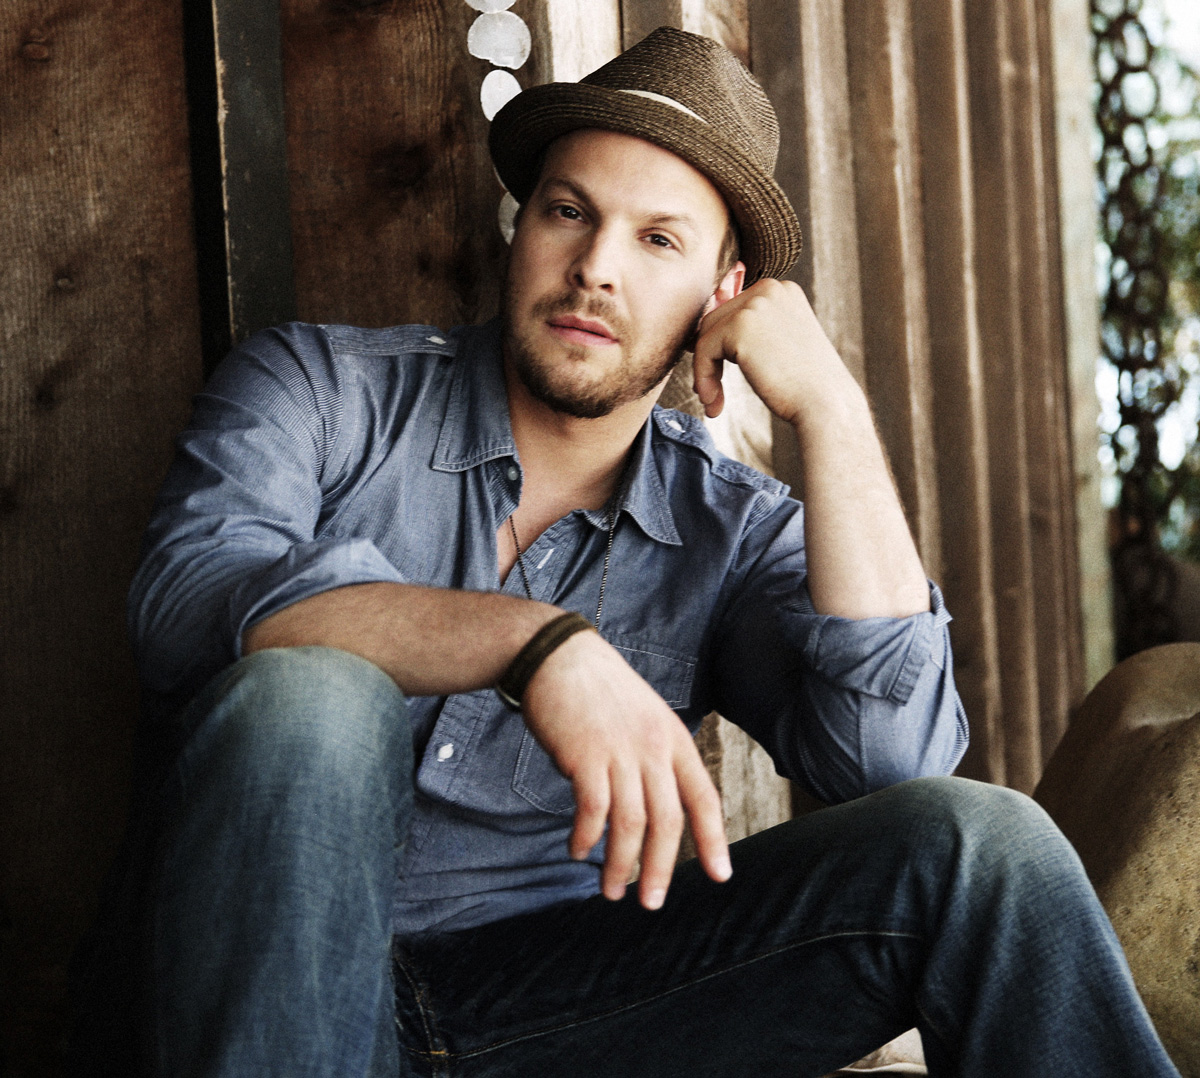 Gavin degraw making love with the radio on review Gavin Degraw Napa Valley Ca Patch